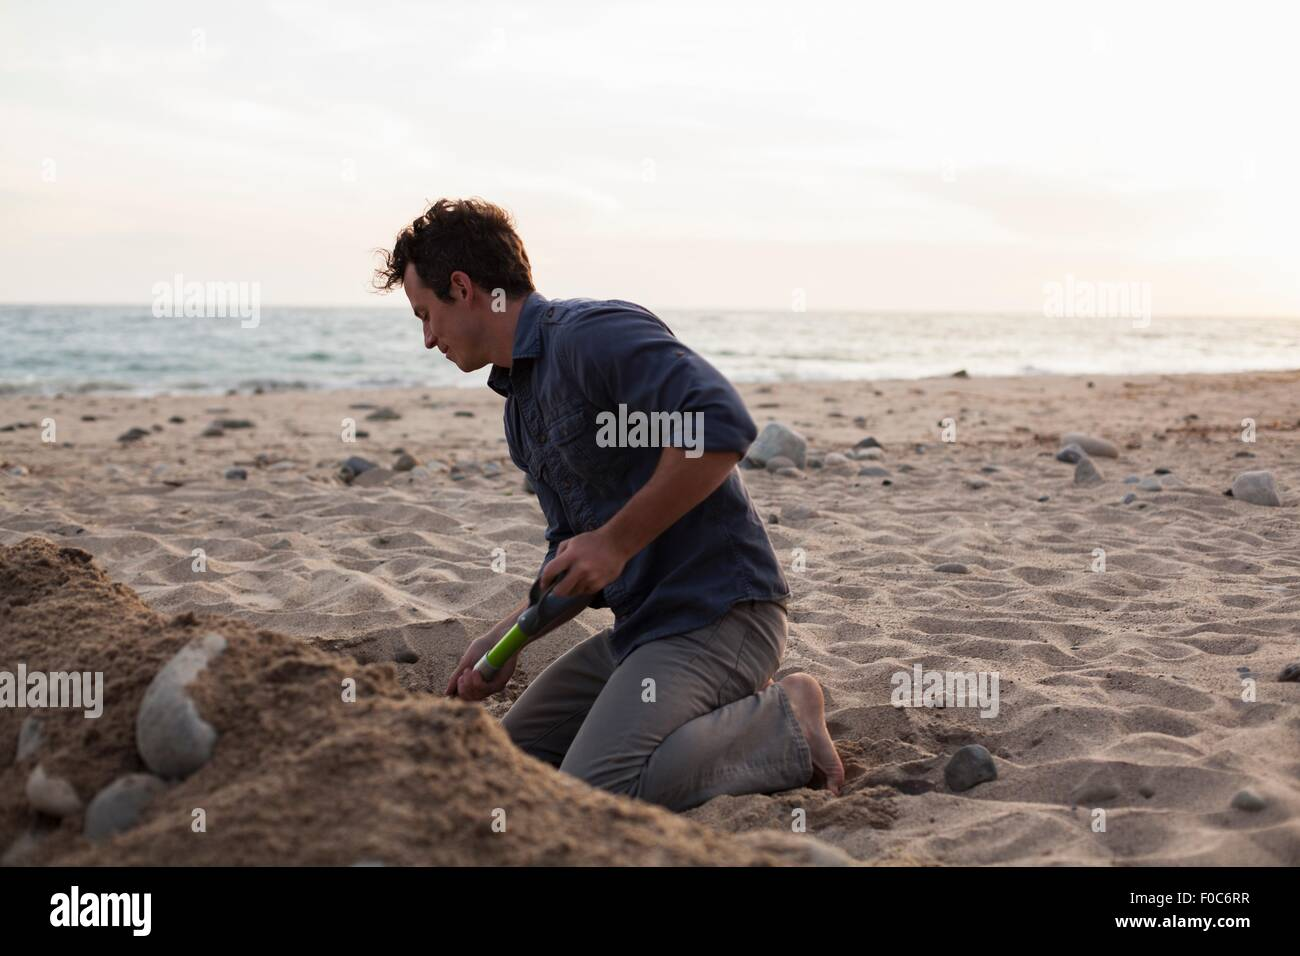 Man digging into sand on beach - Stock Image